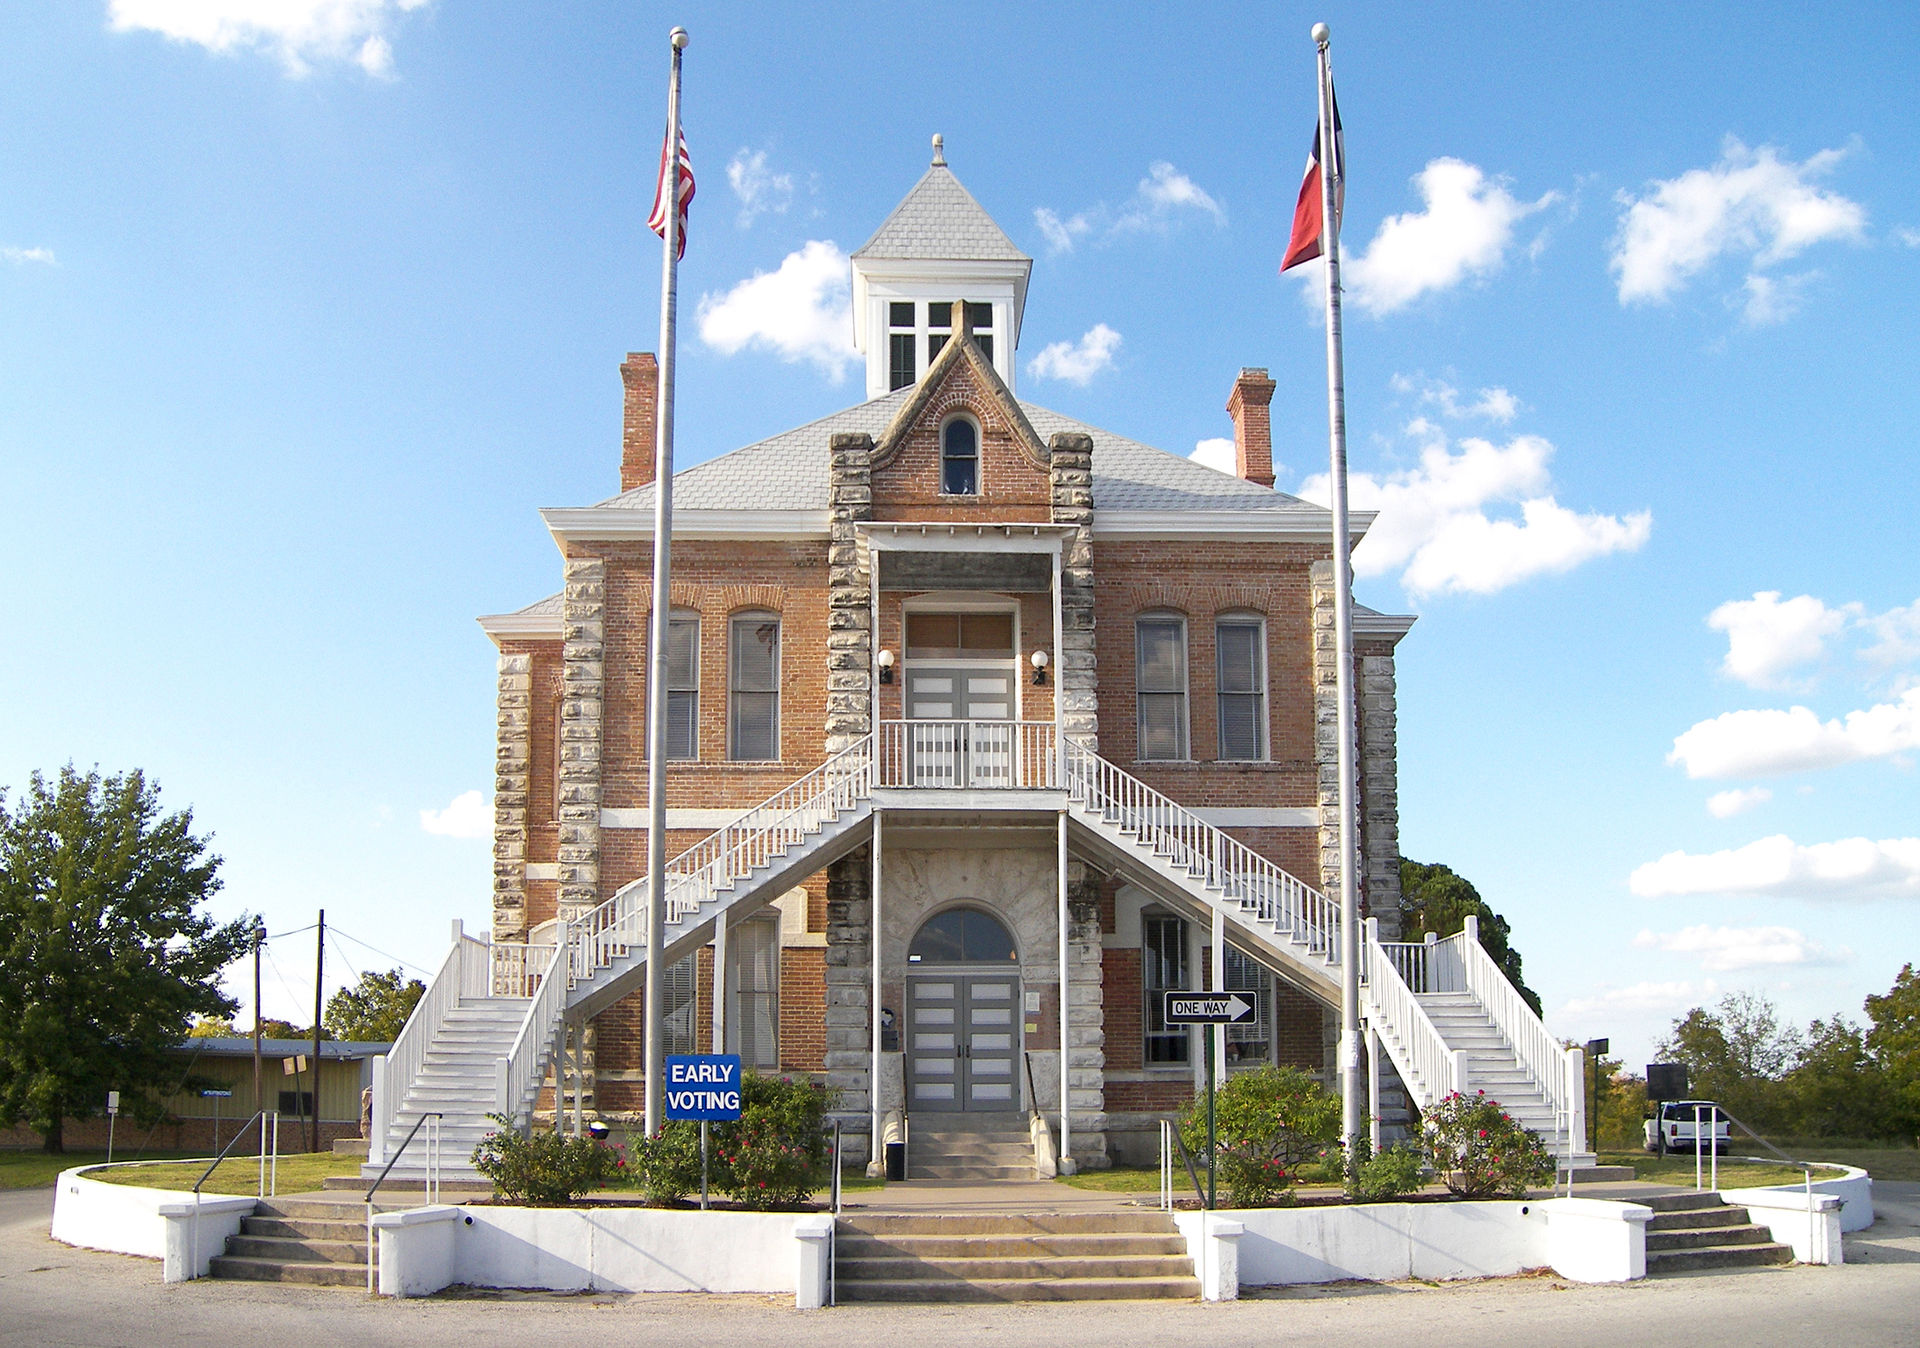 The Grimes County Courthouse was built in 1891.